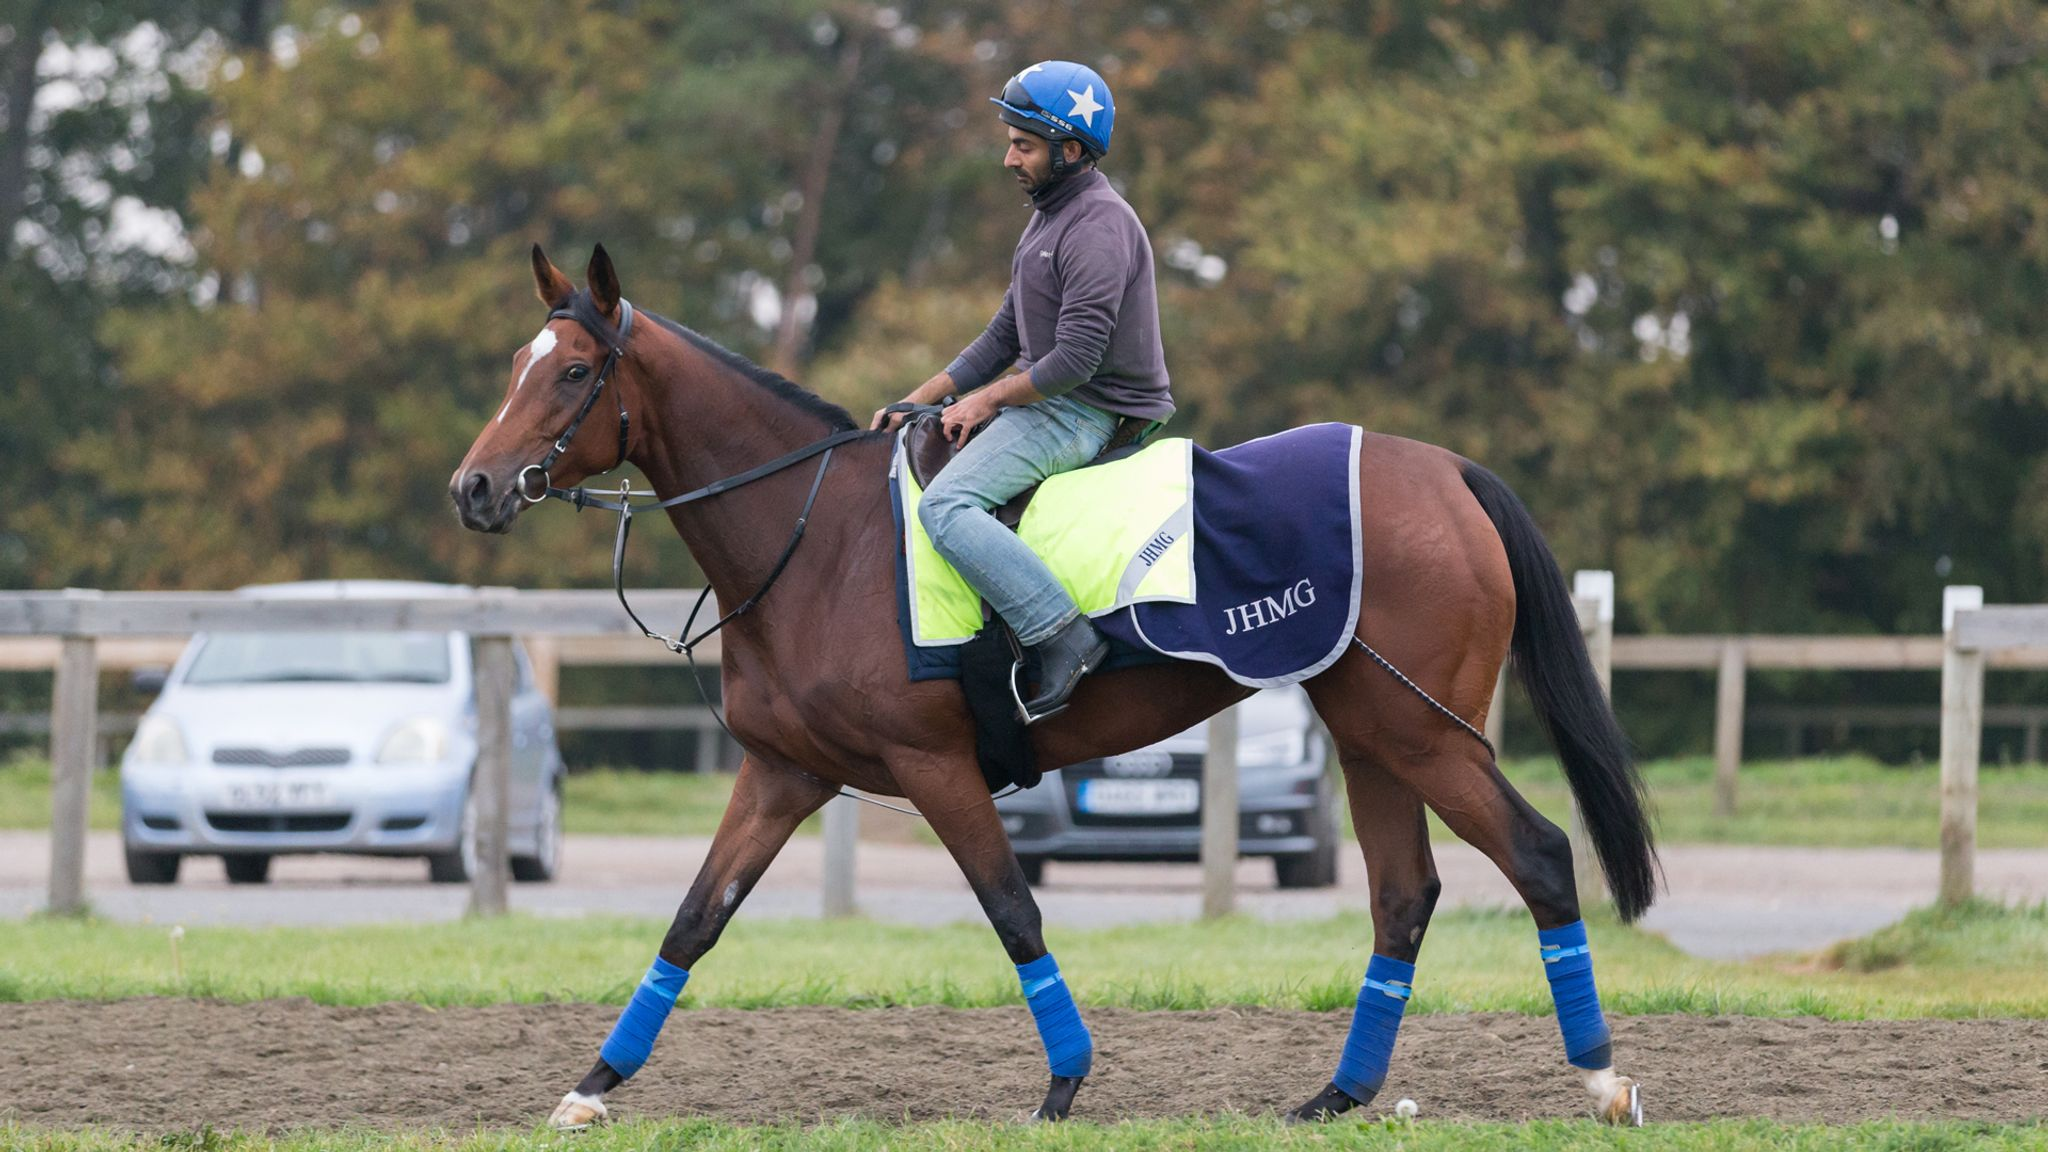 Enable pleases in Newmarket workout ahead of Arc bid